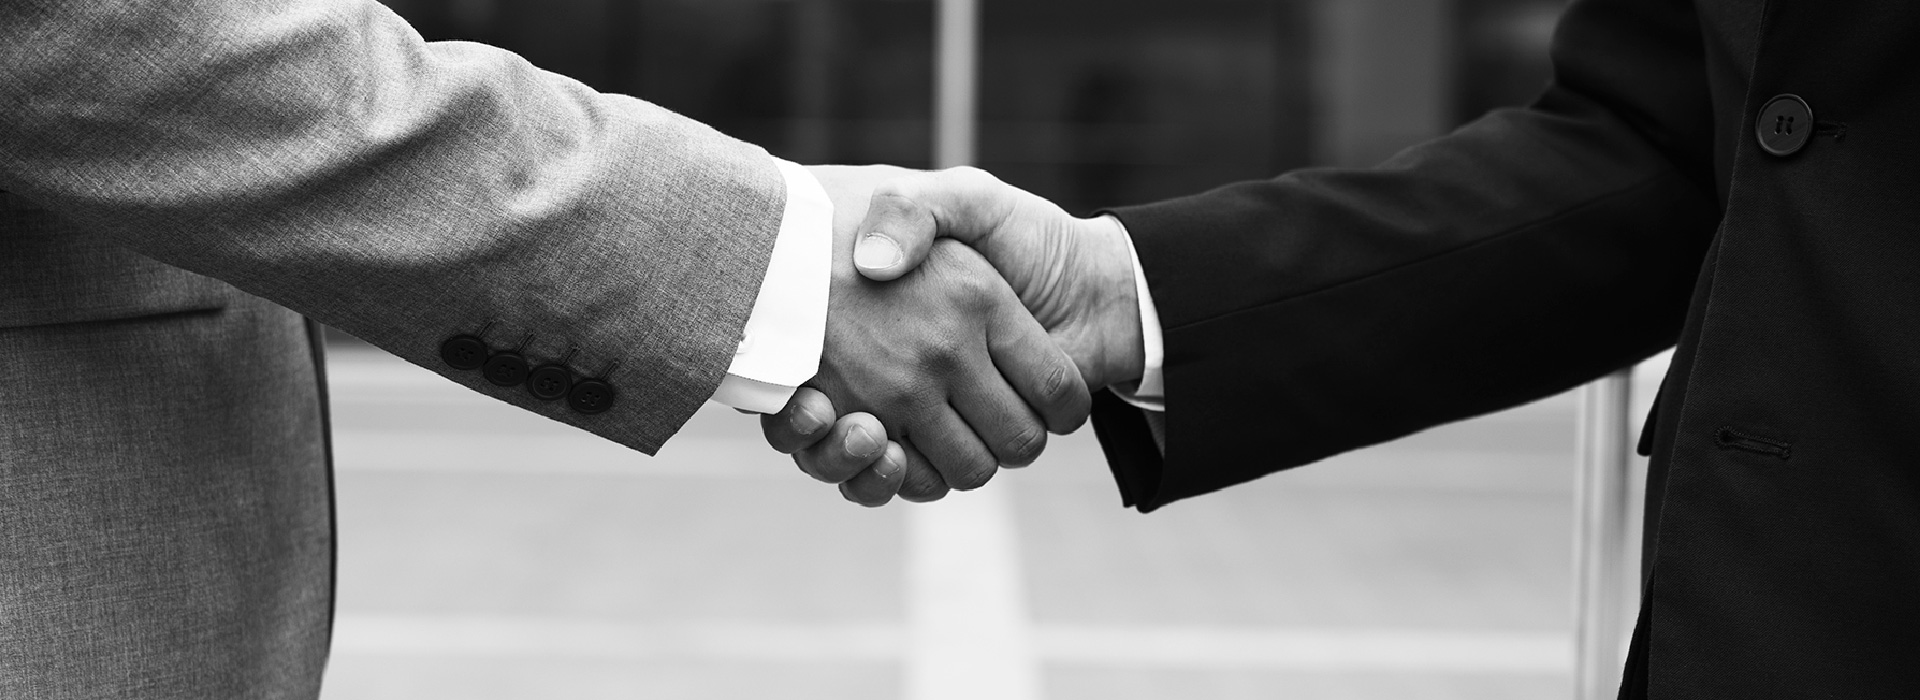 getTREAD hand shake with business partner